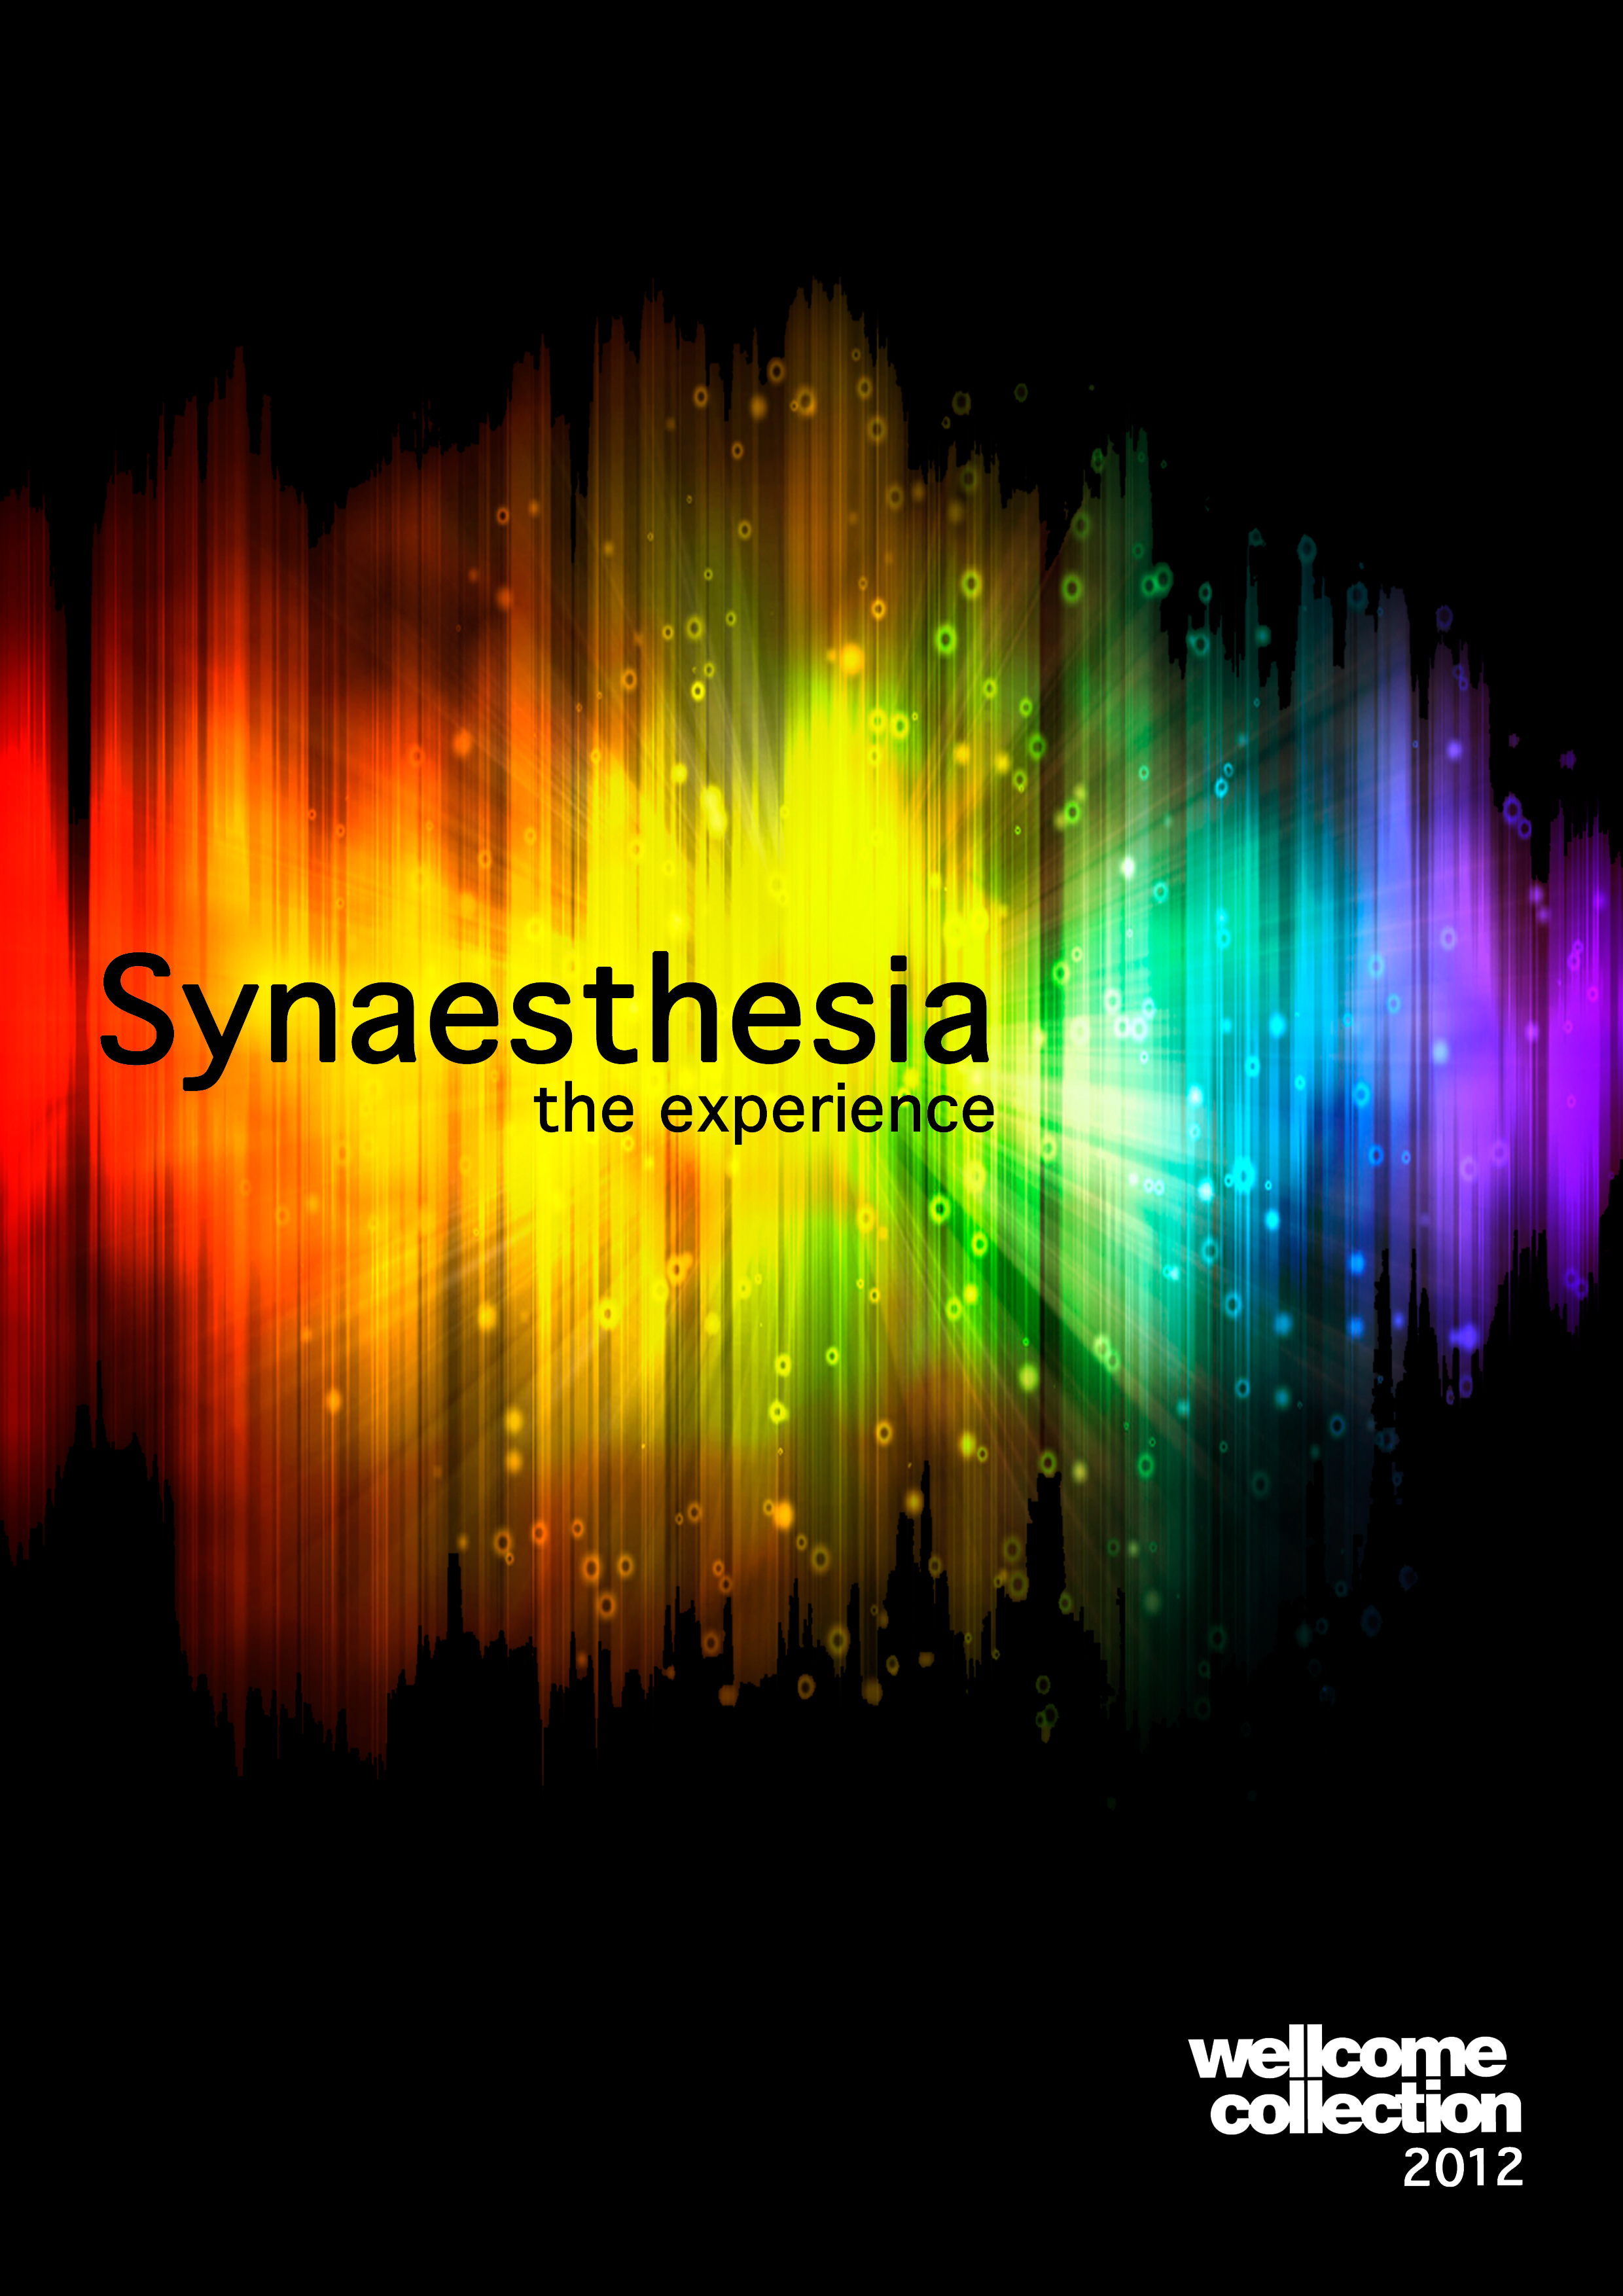 SYNAESTHESIA EXHIBITION POSTER